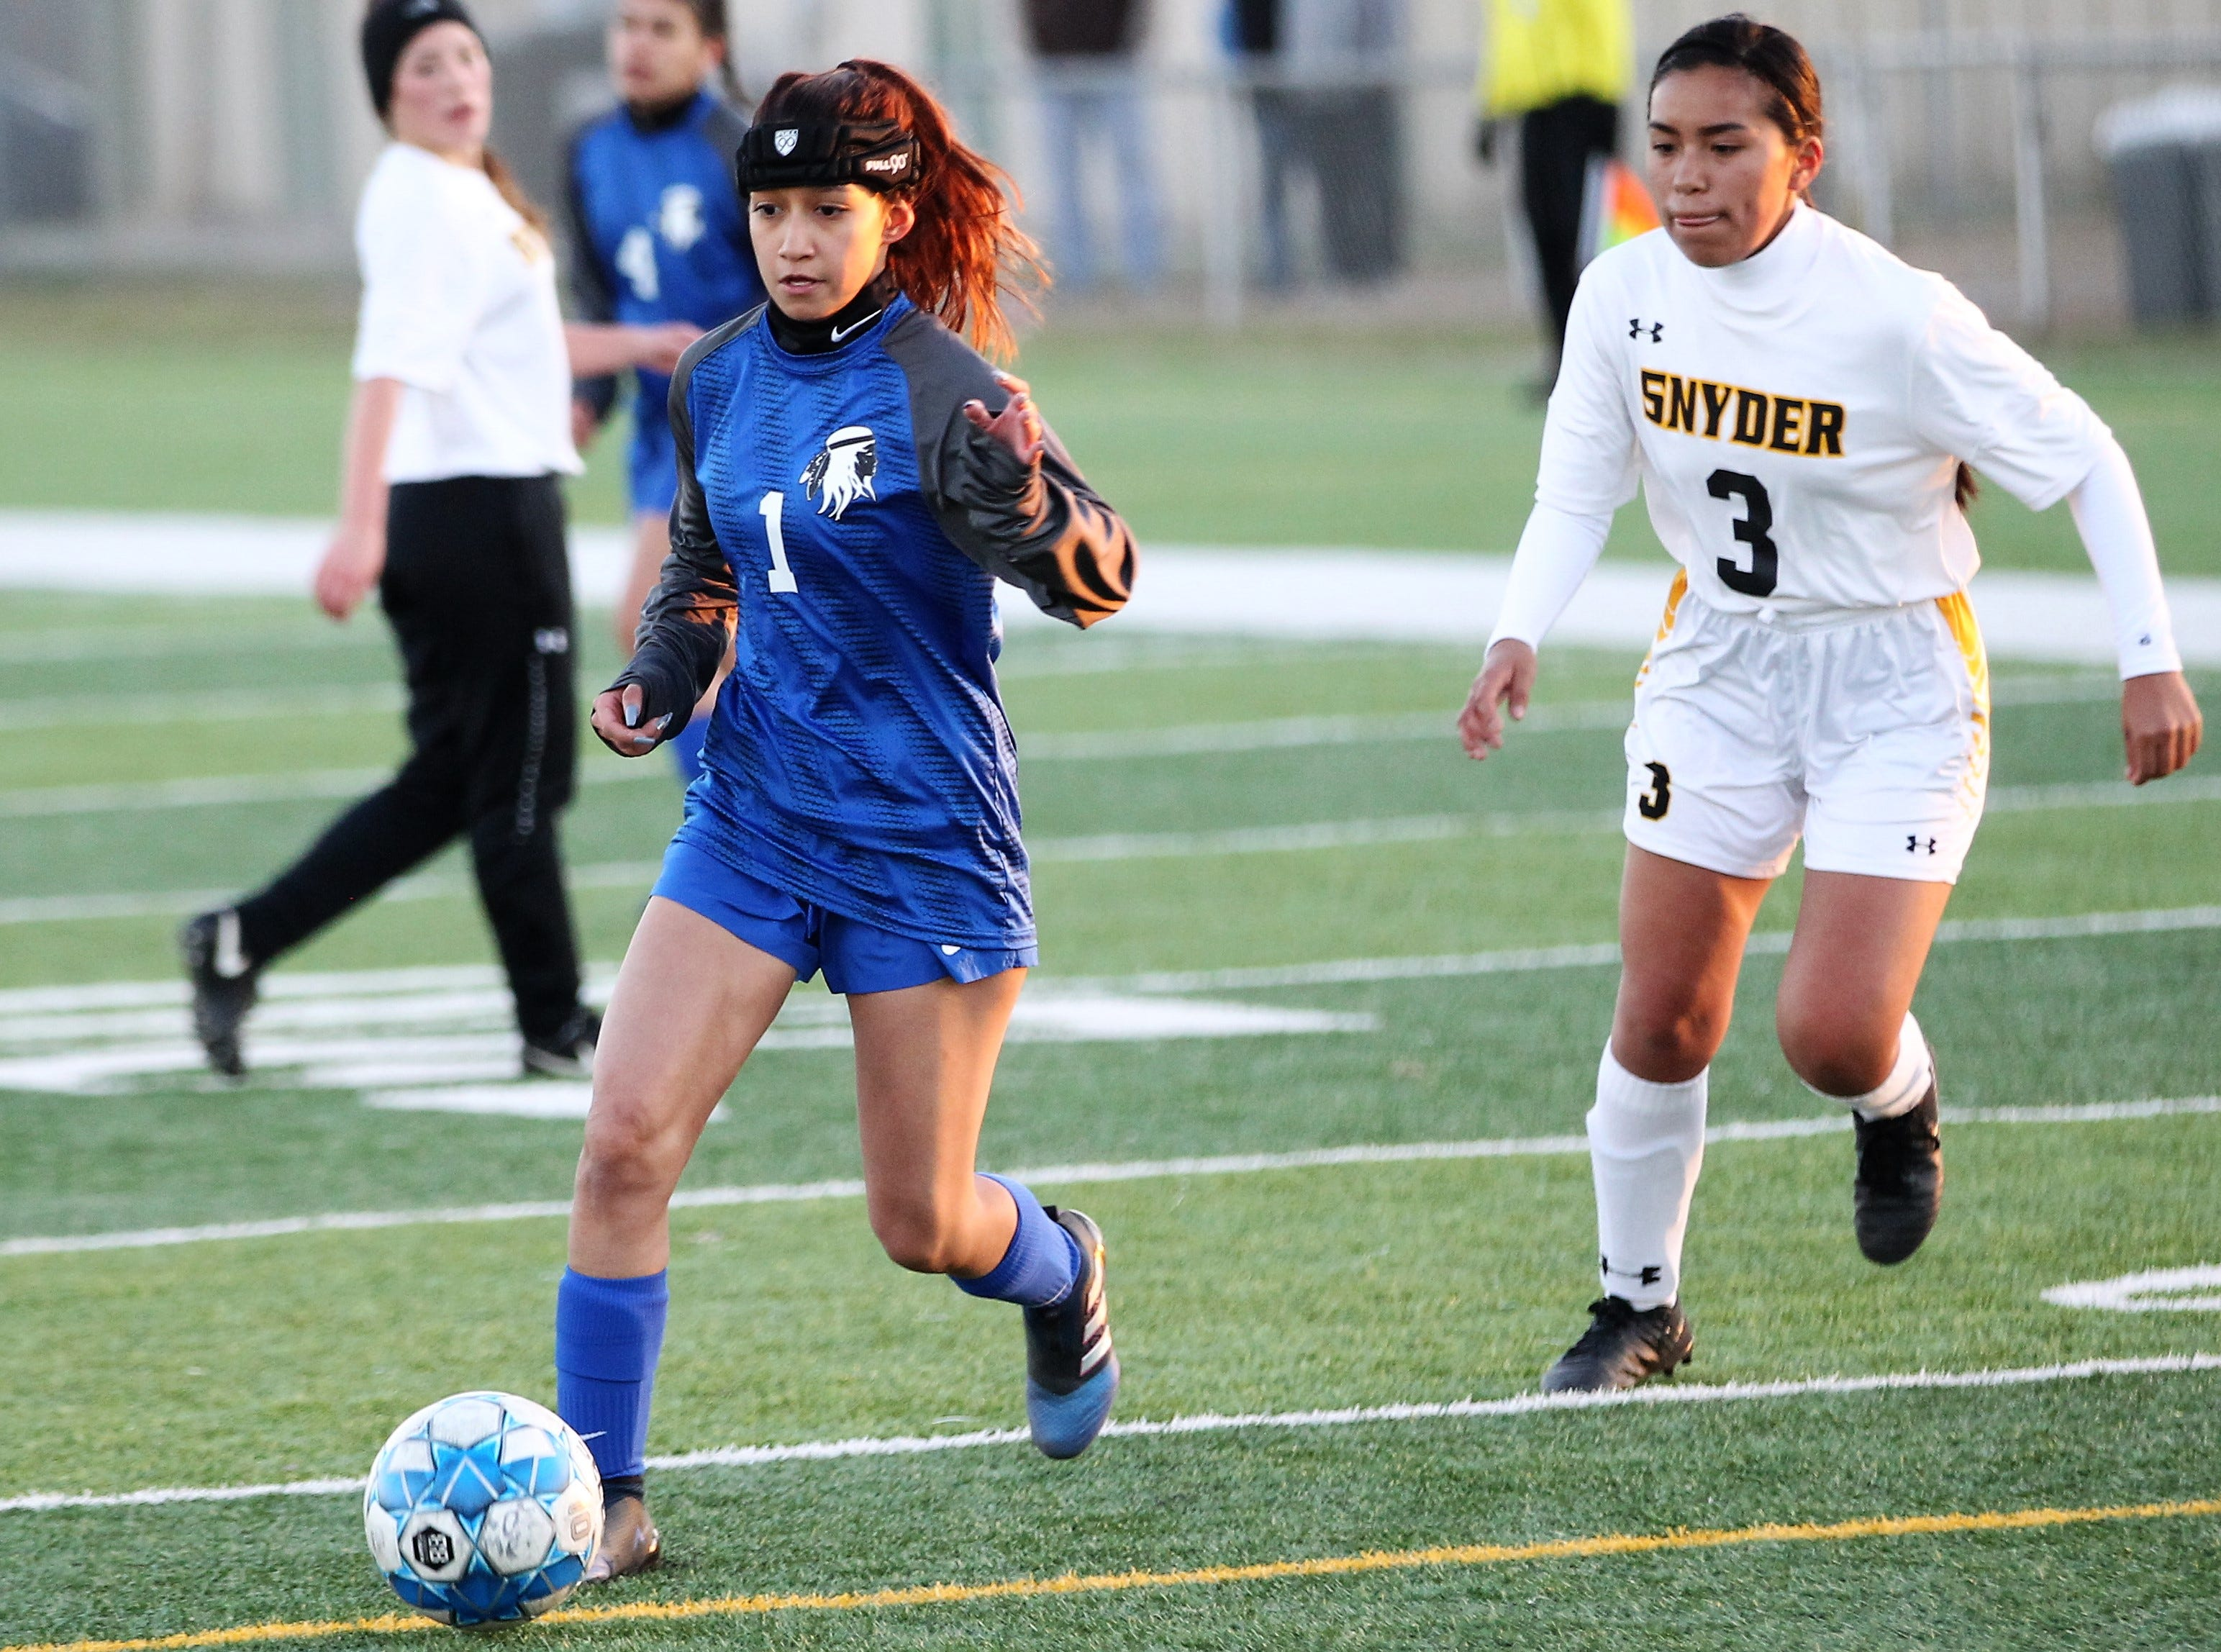 Lake View's Elida Vela makes a move toward the goal in a District 4-4A soccer match against Snyder at Old Bobcat Stadium on Tuesday, March 5, 2019.